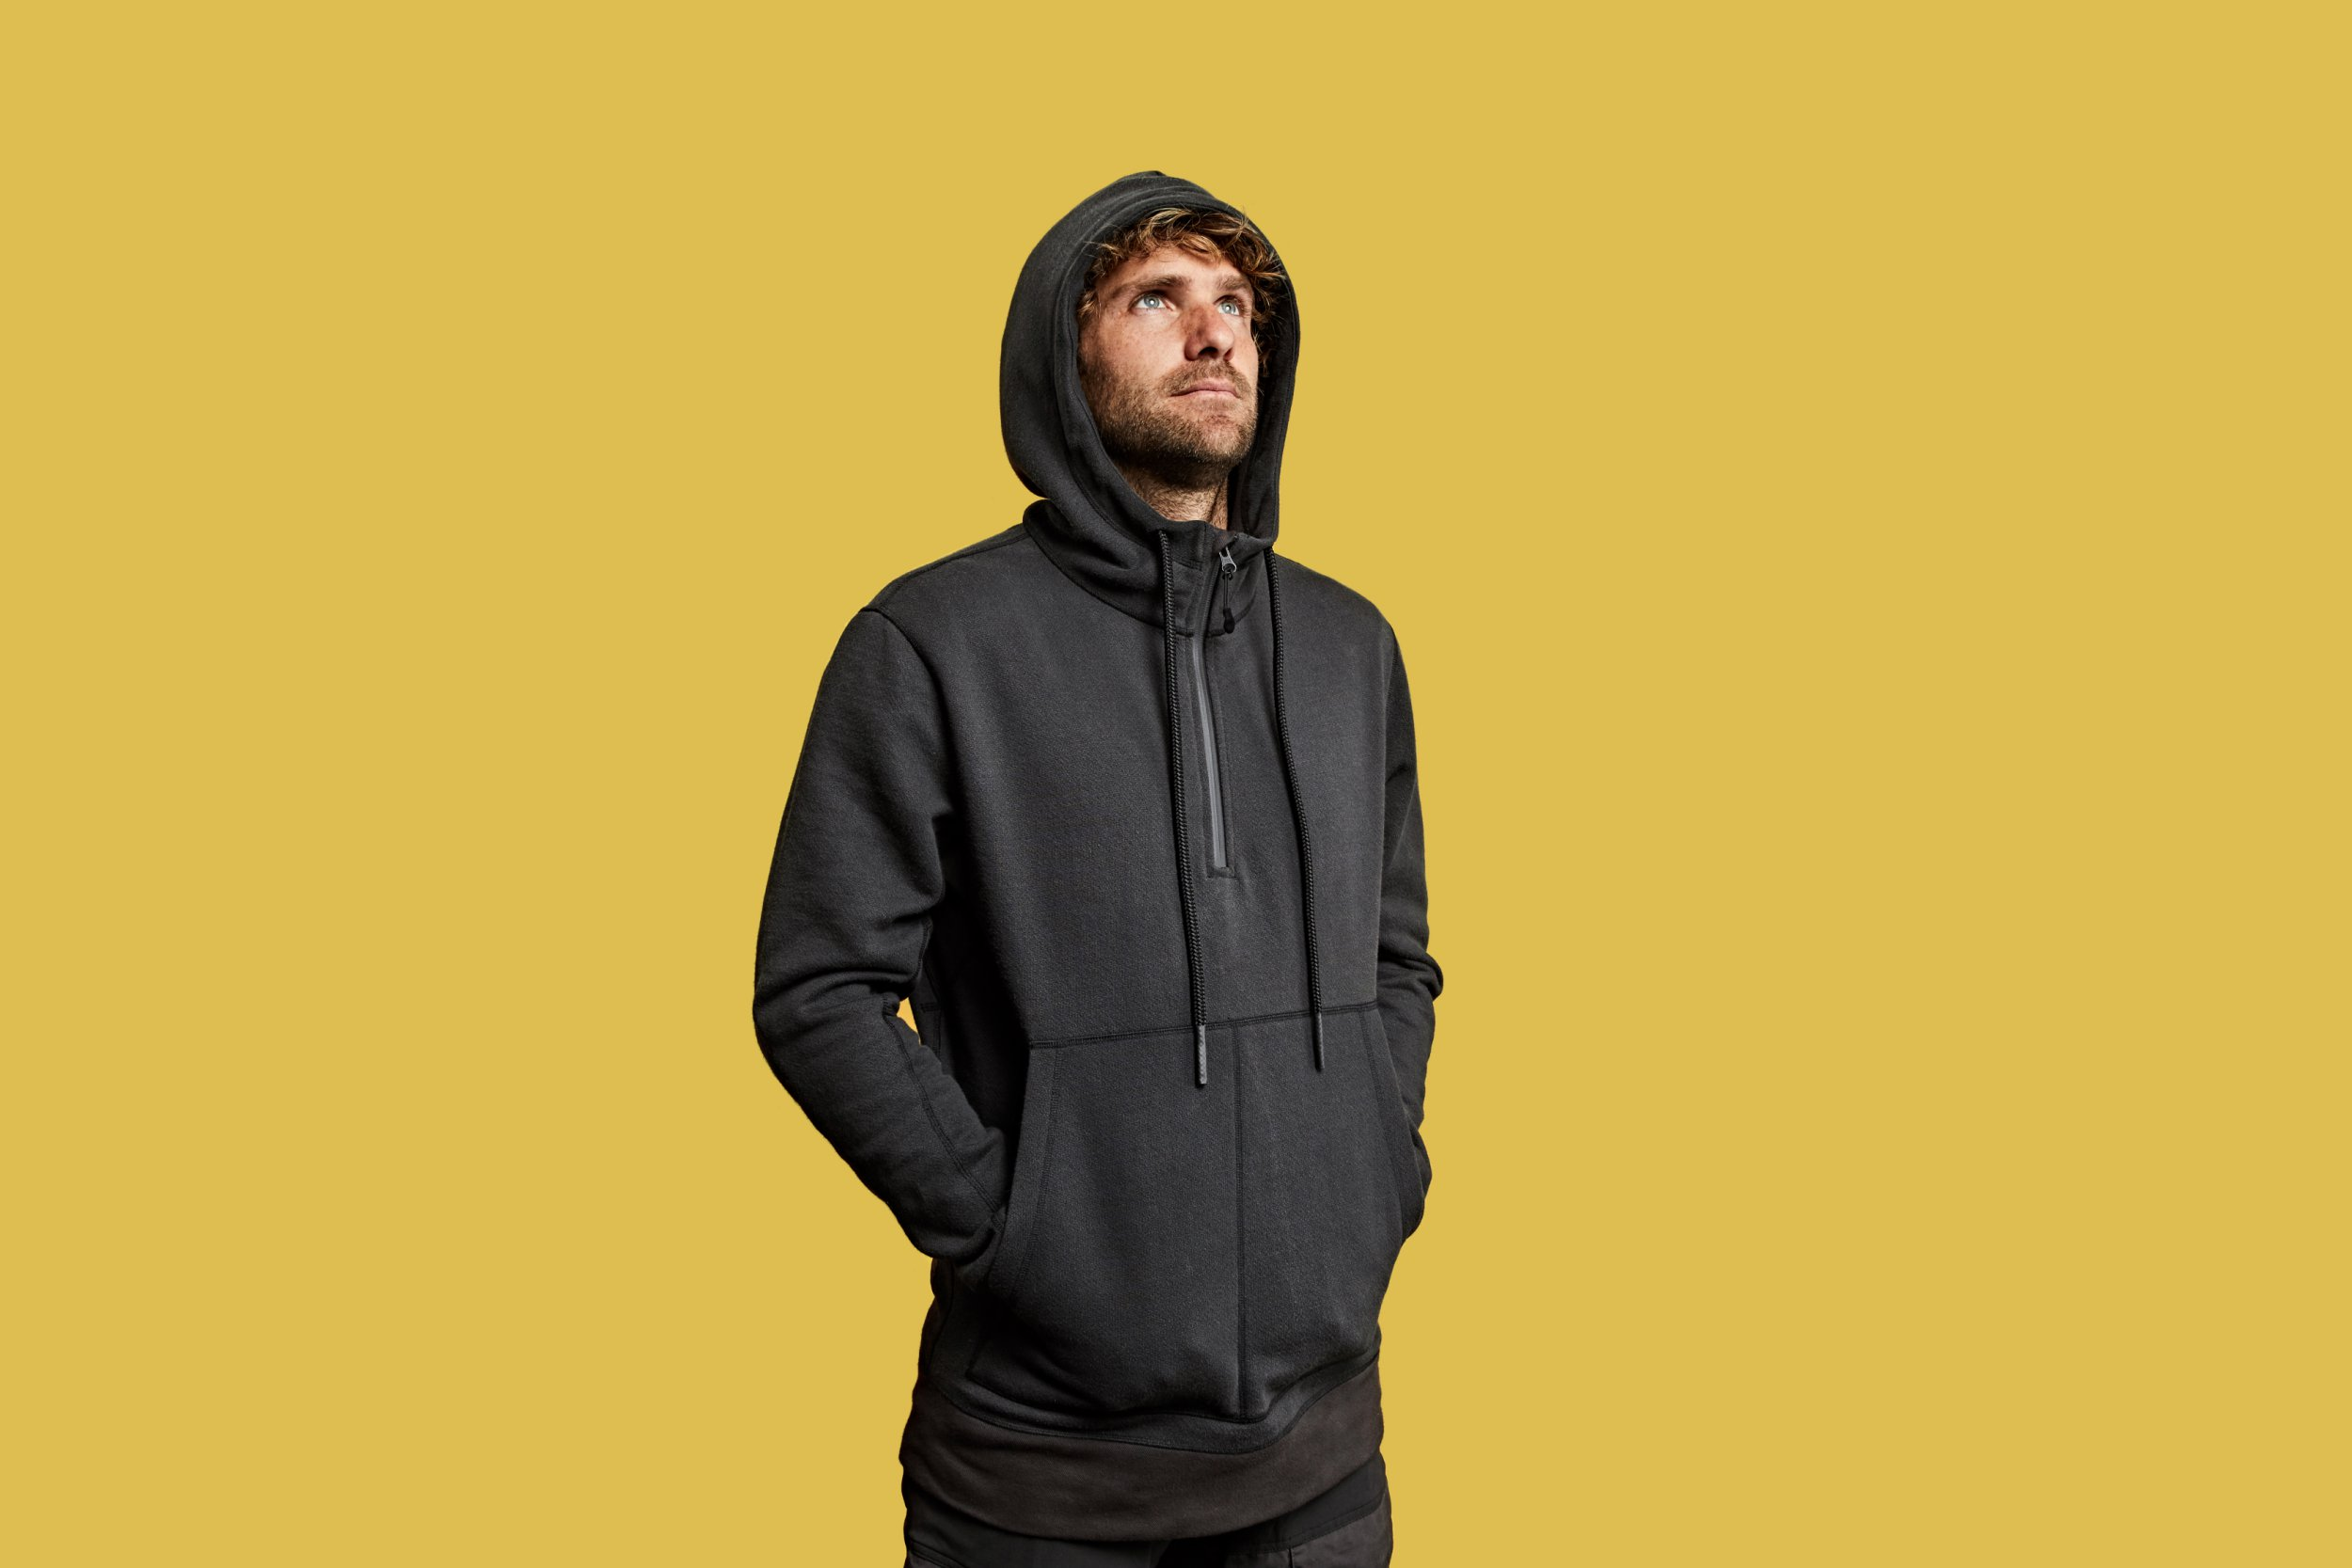 Behold the world's first 'indestructible' hoody